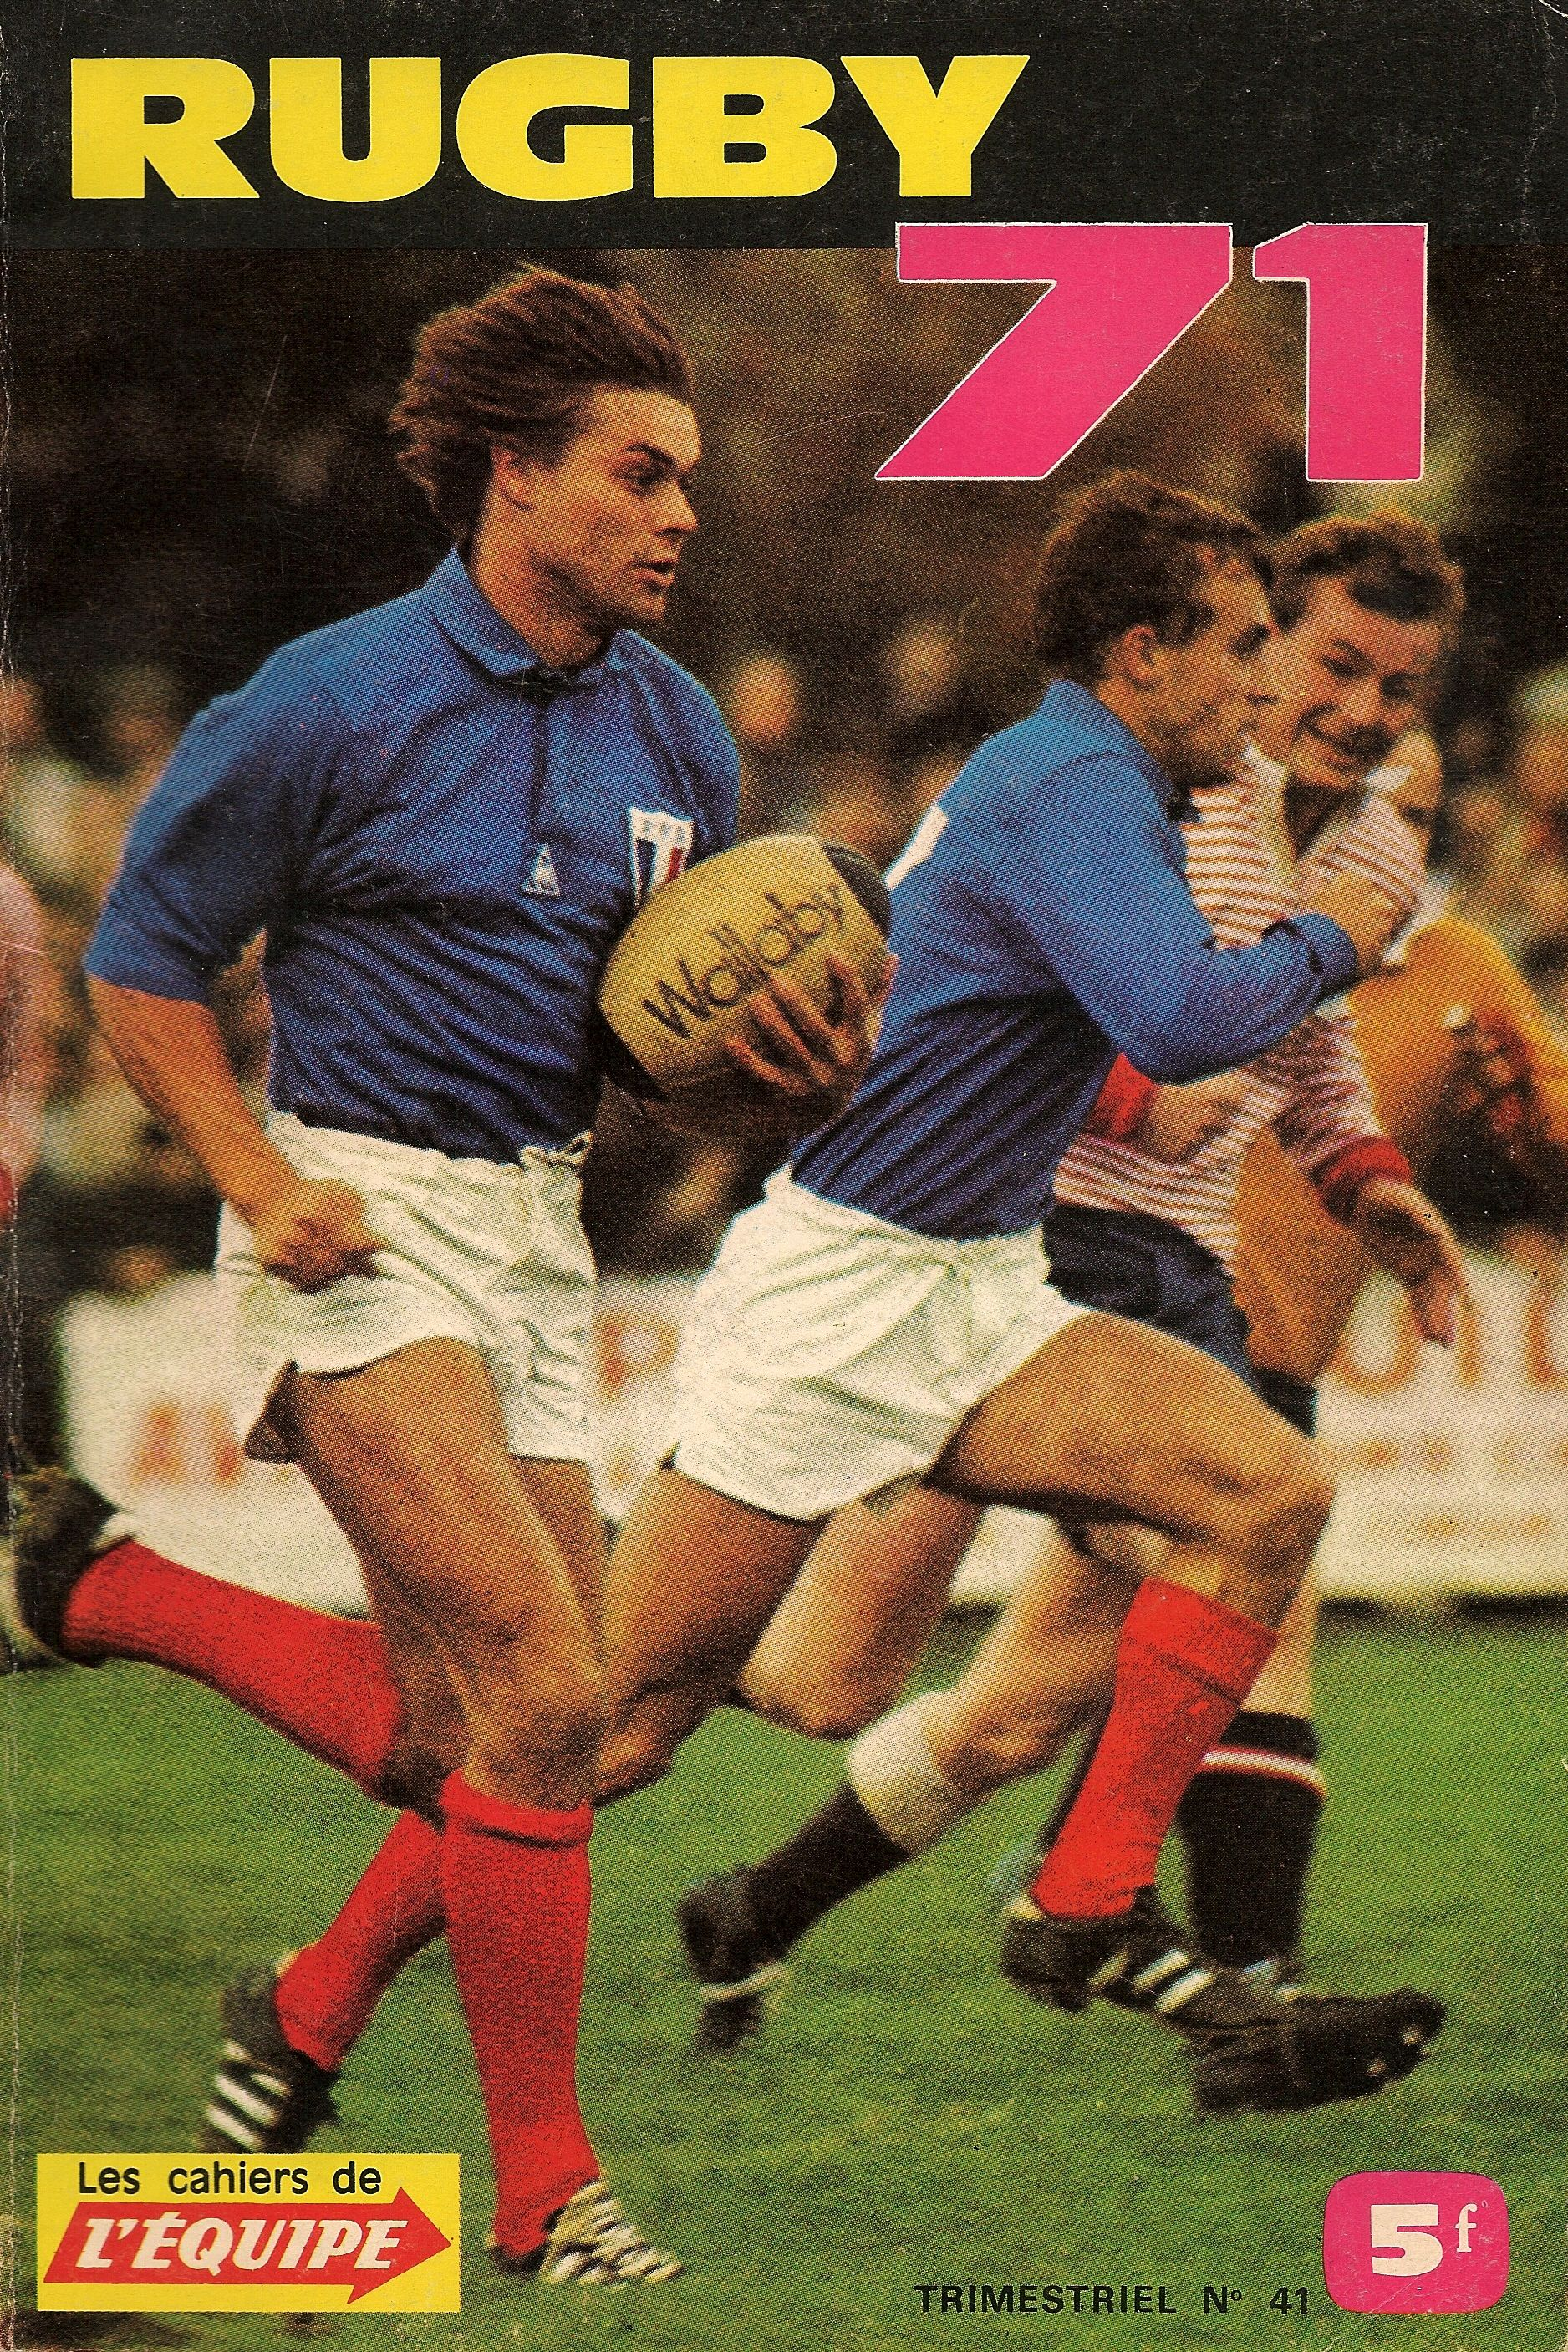 Les Cahiers De L Equipe Rugby 71 Rugby Design Rugby Art Rugby